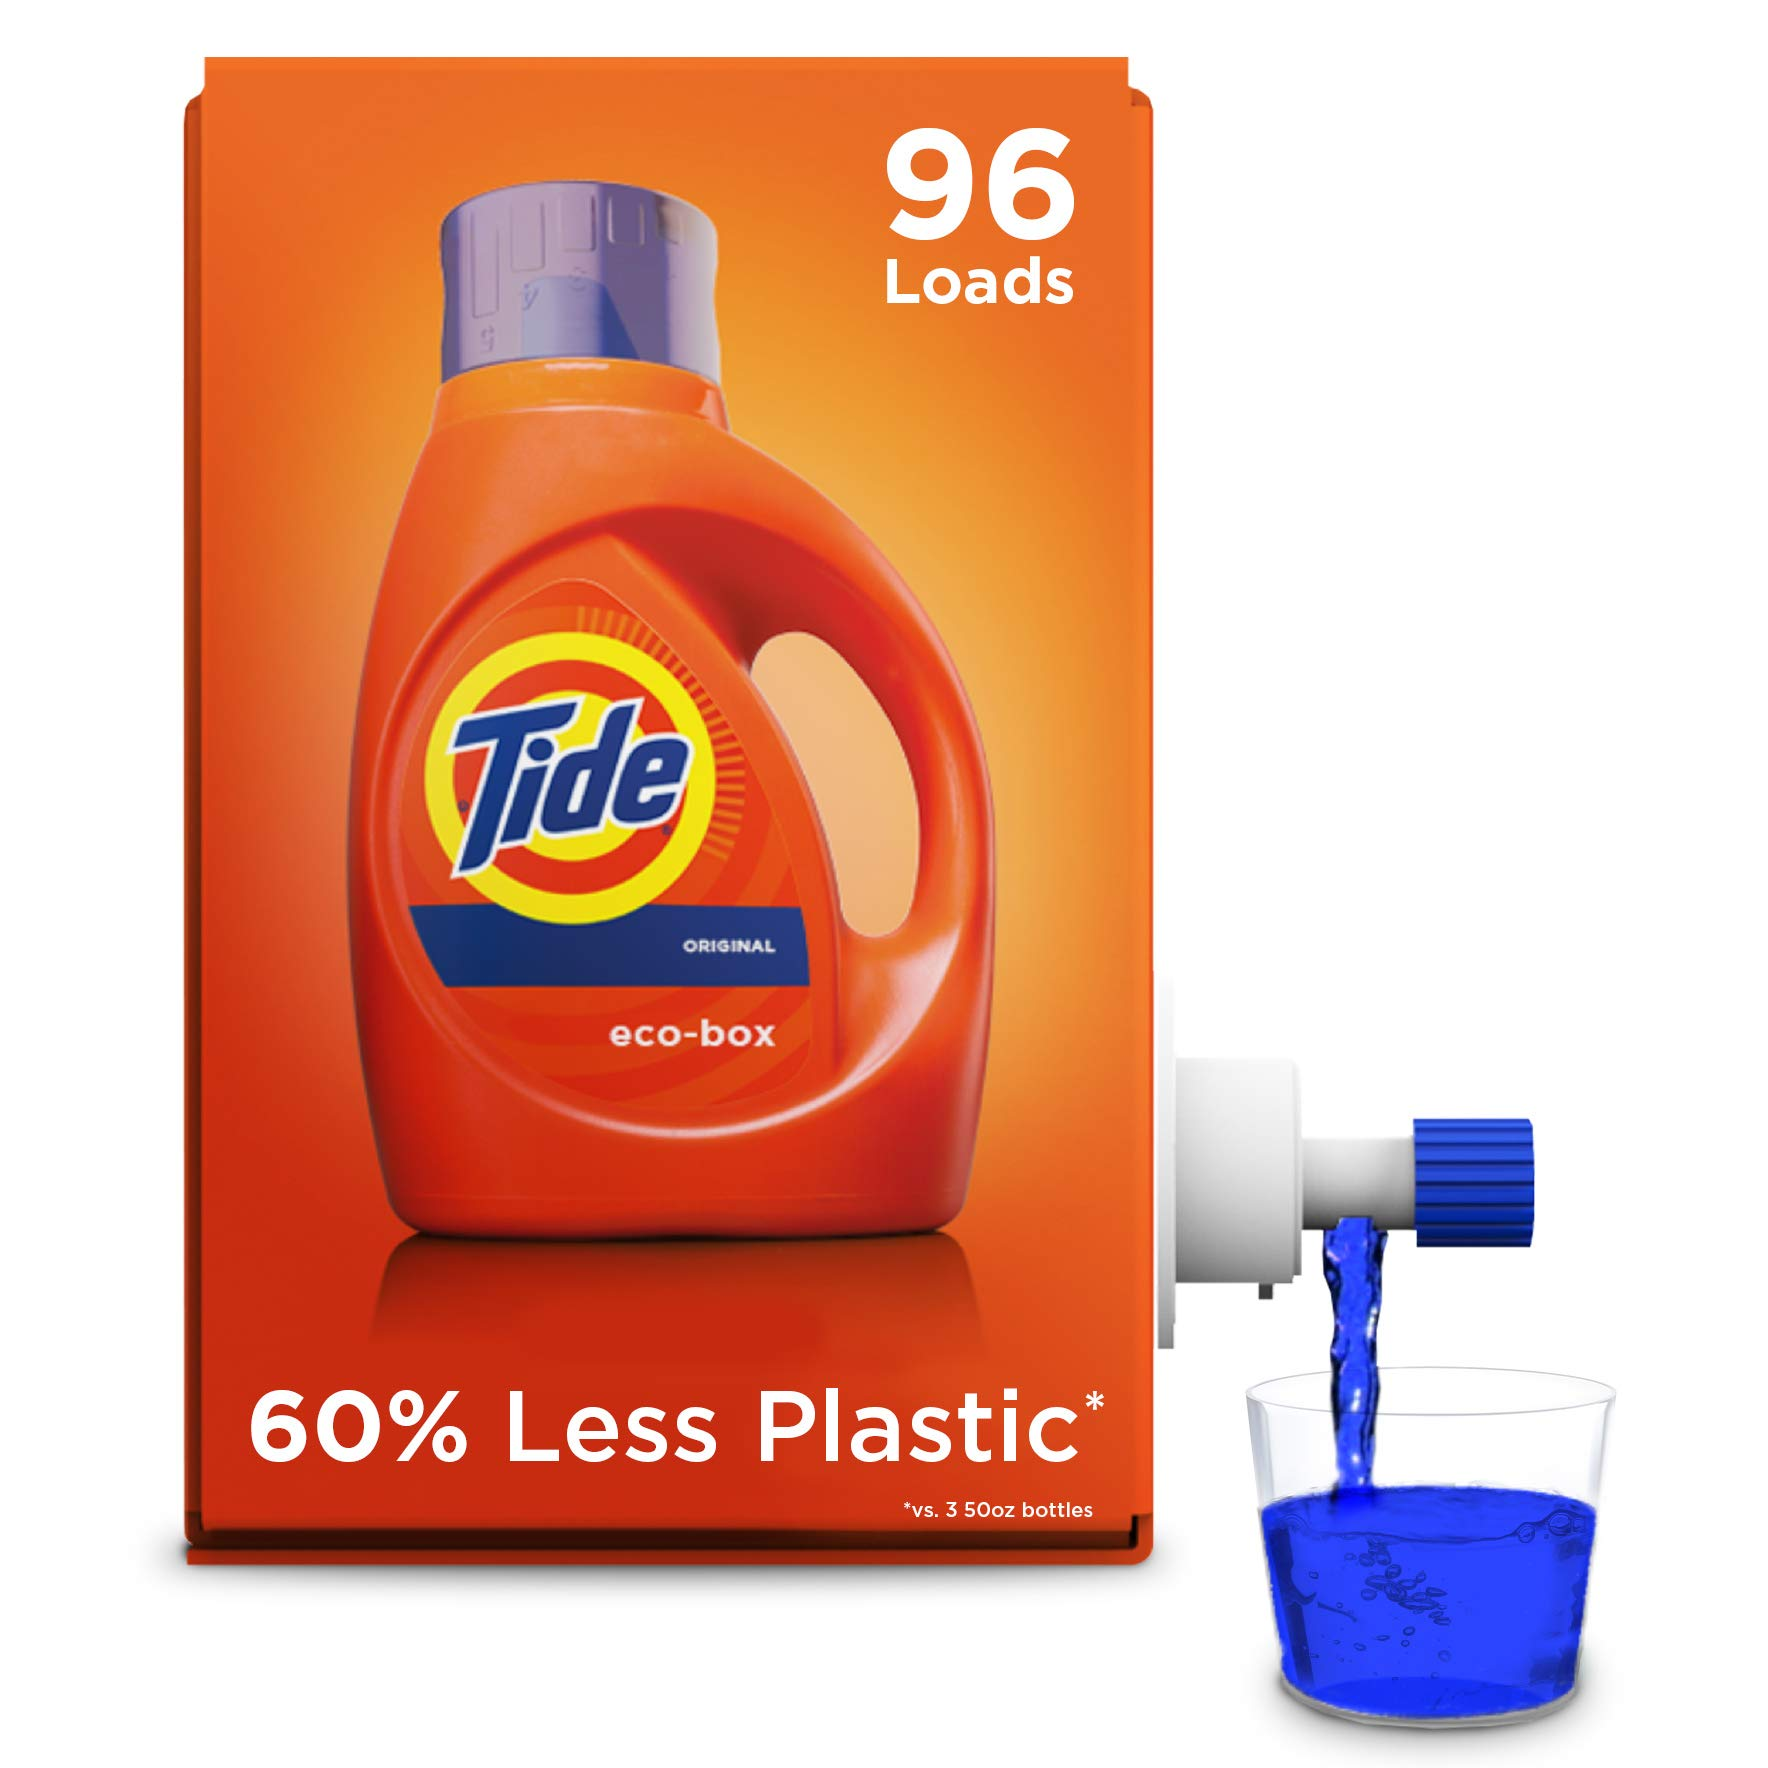 Tide Laundry Detergent Liquid Eco-Box, Concentrated, Original Scent, 105 oz, HE Compatible, 96 Loads by Tide (Image #1)